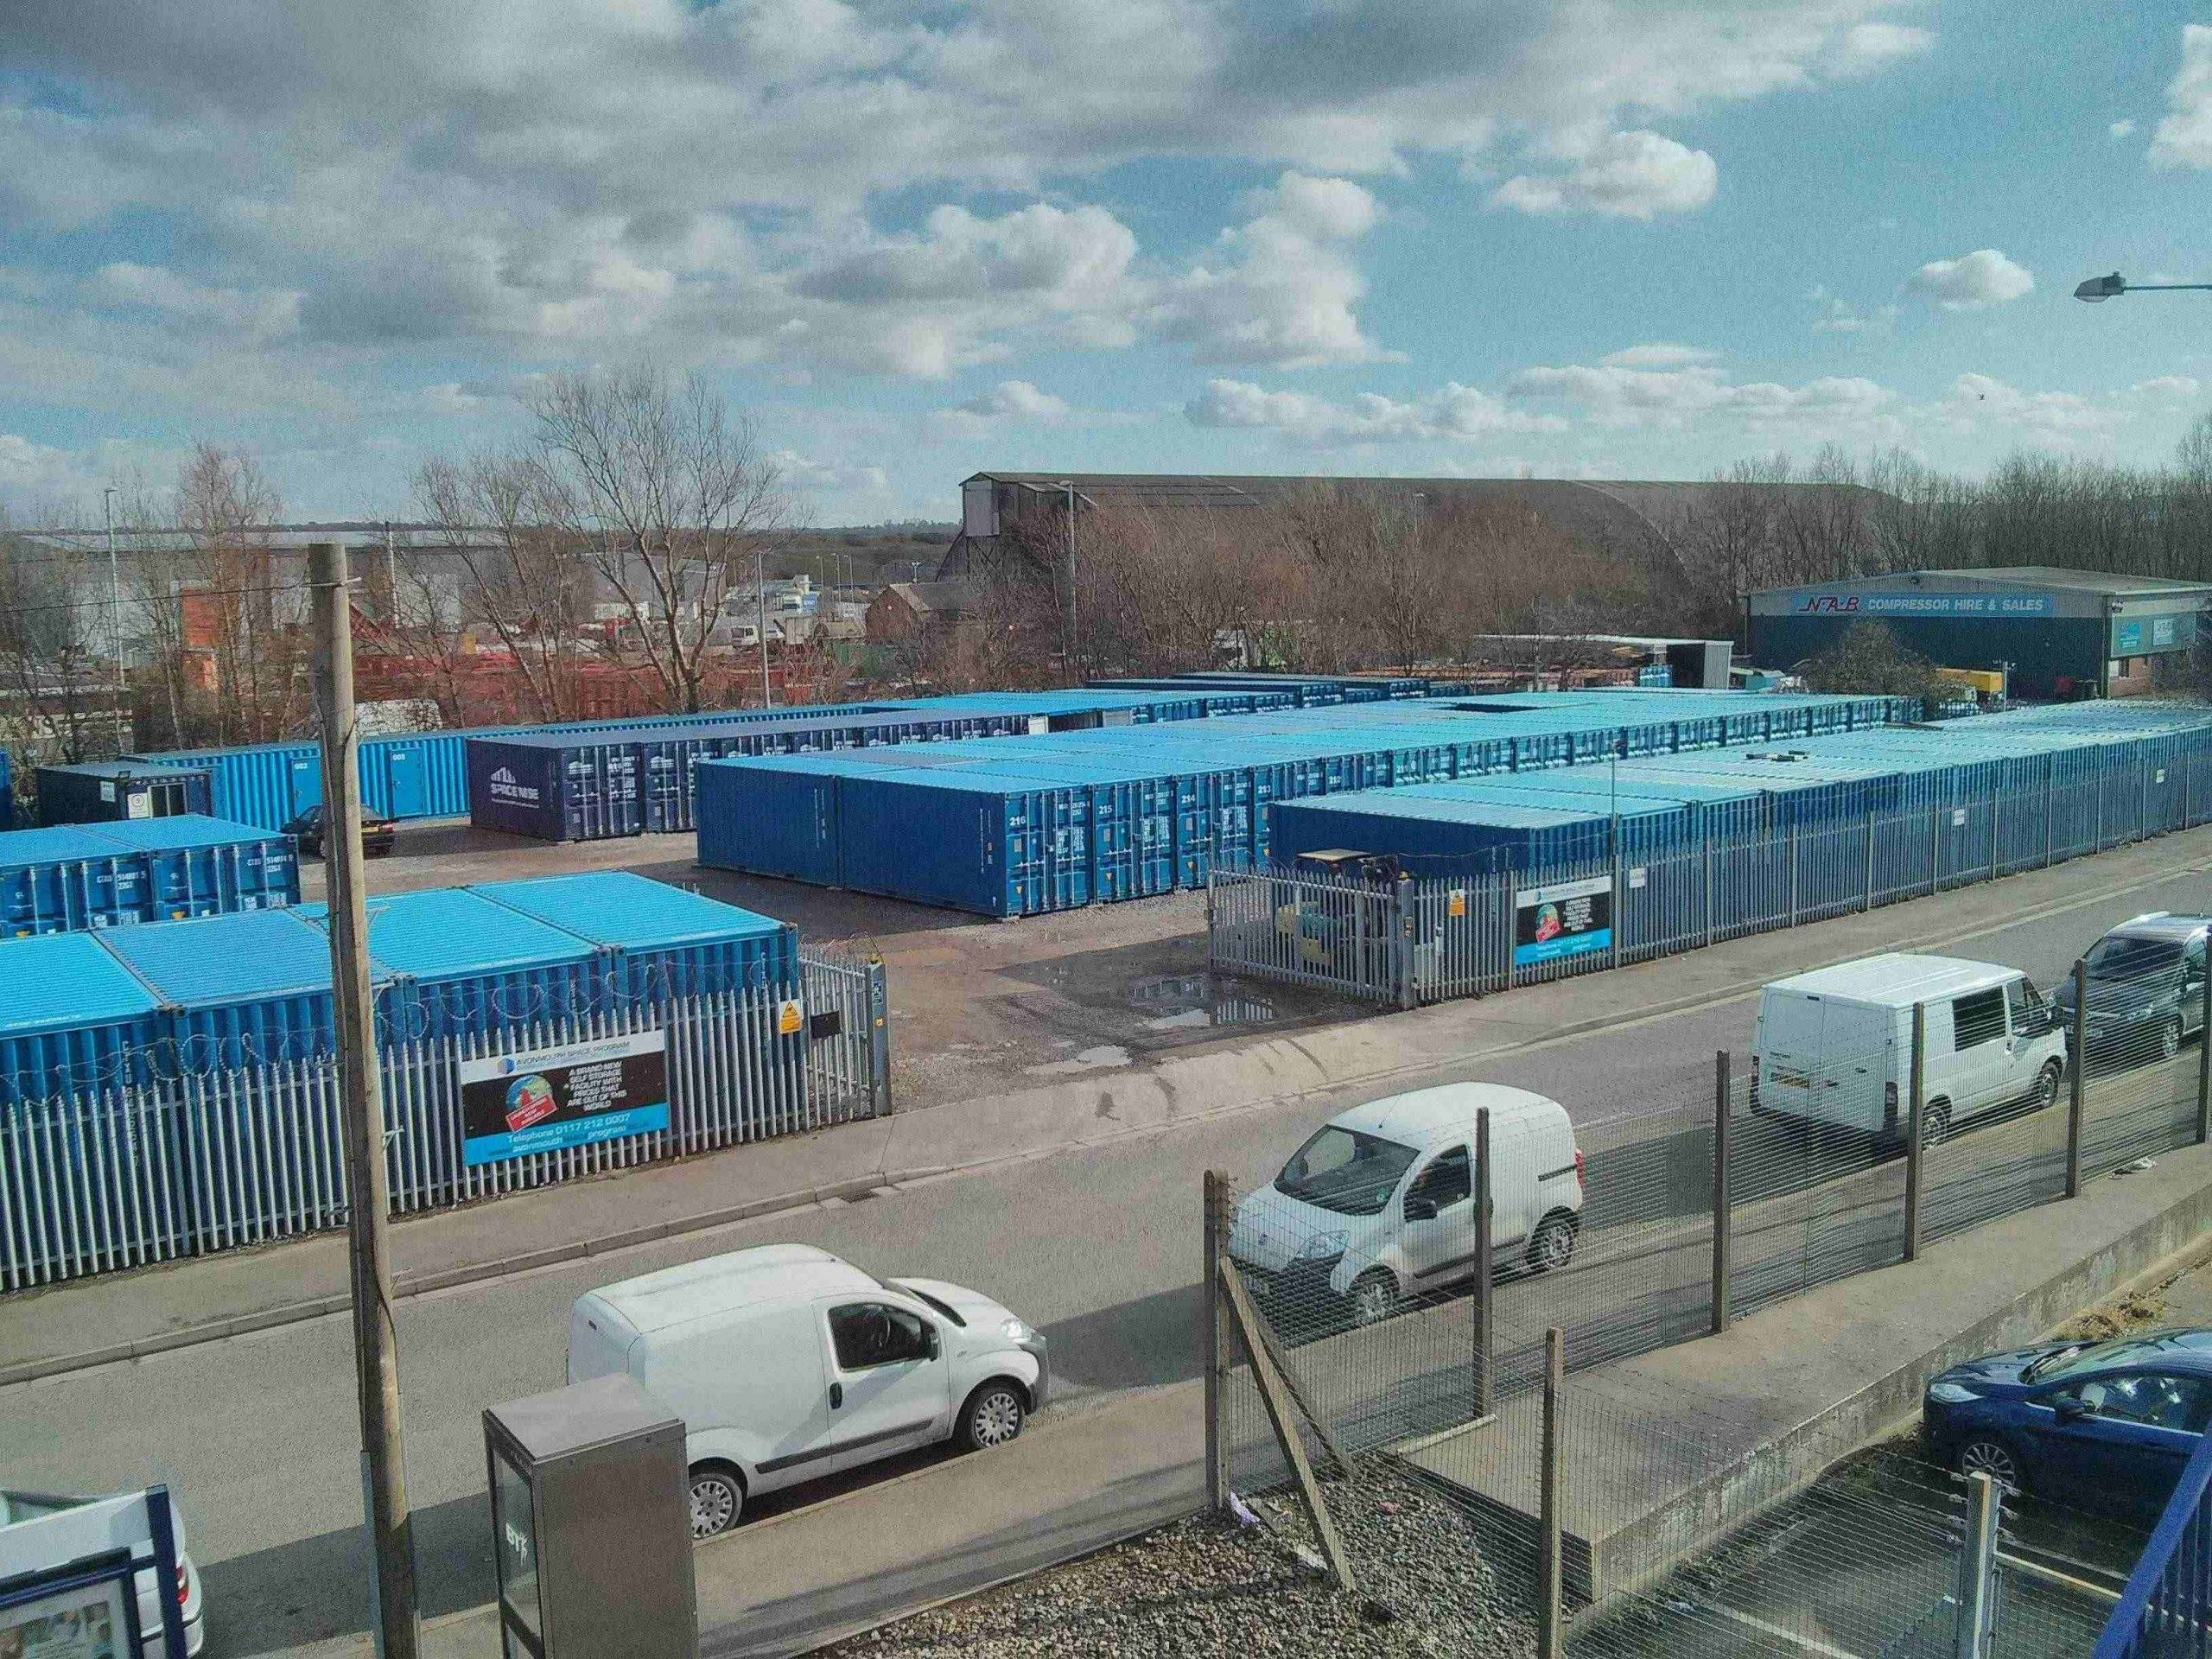 The Avonmouth Space Program a storage company in St George's Industrial Estate, Avonmouth, Bristol, UK